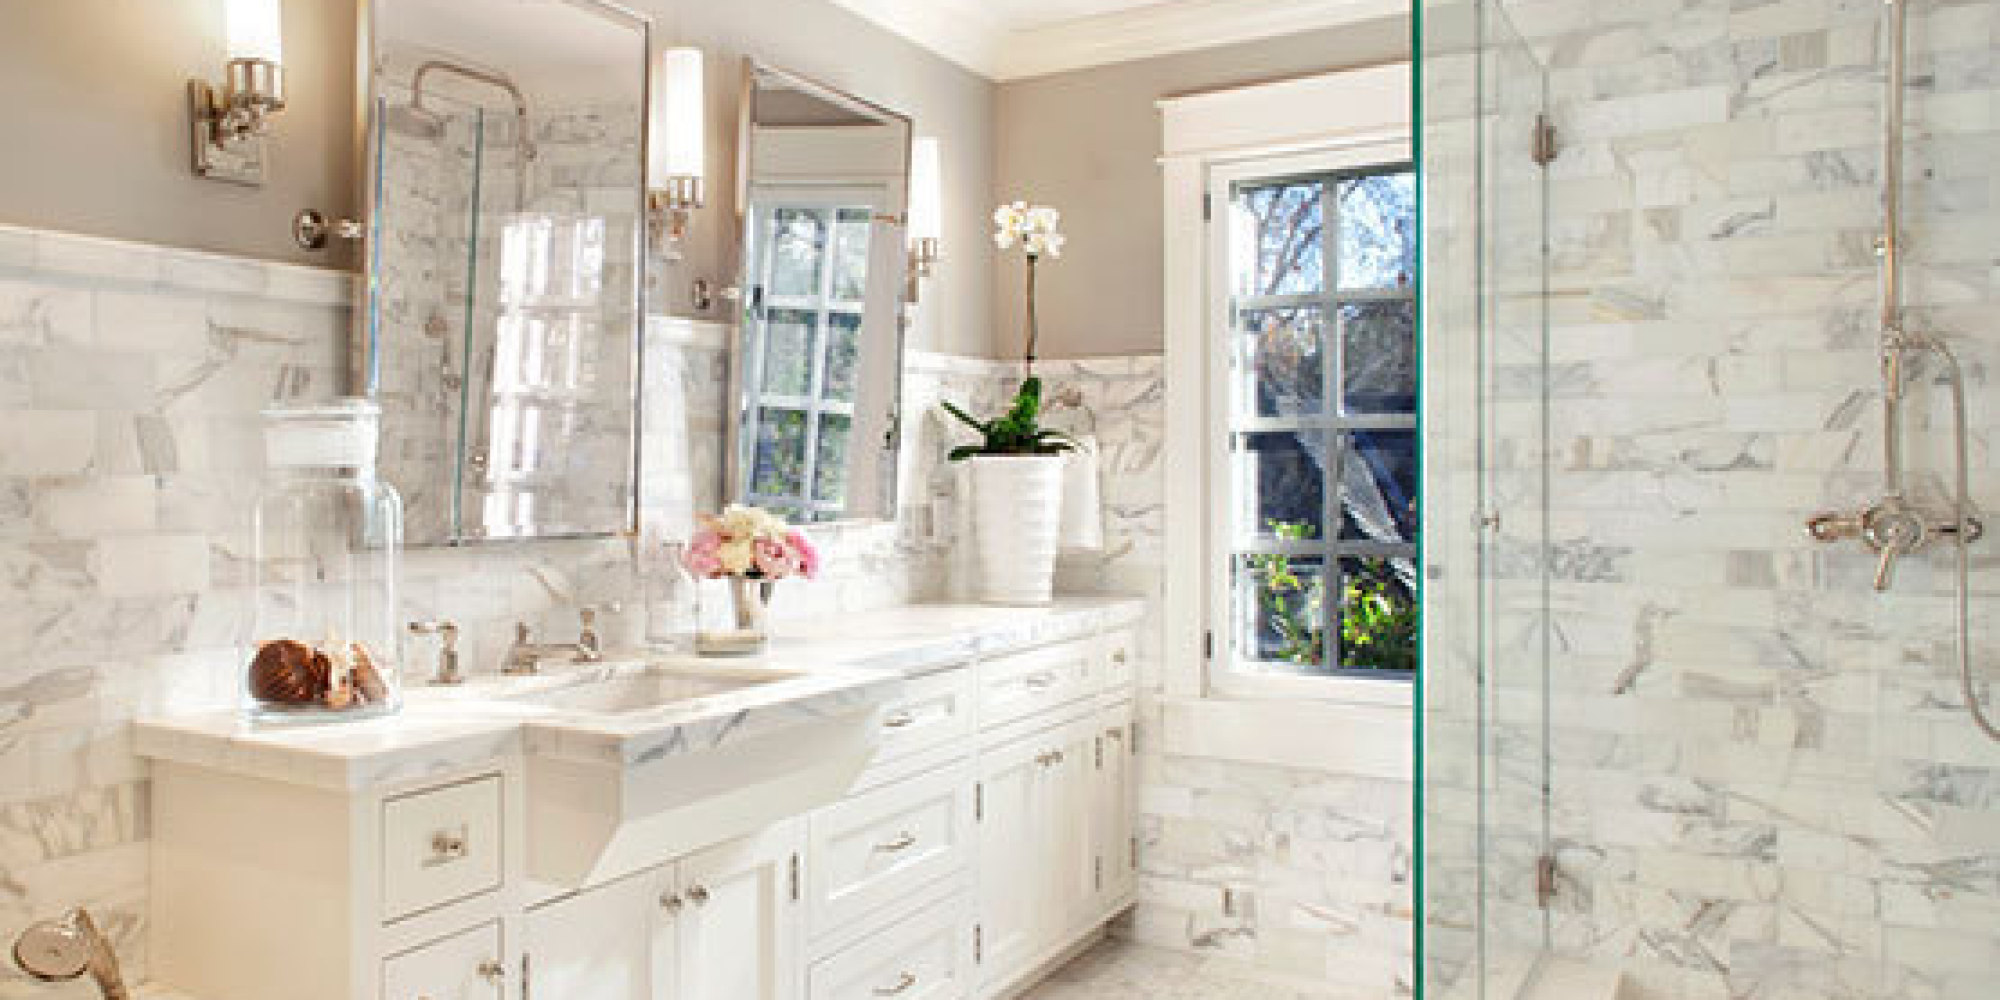 Marble Bathrooms 7 Marble Bathrooms That Redefine Luxury  Huffpost